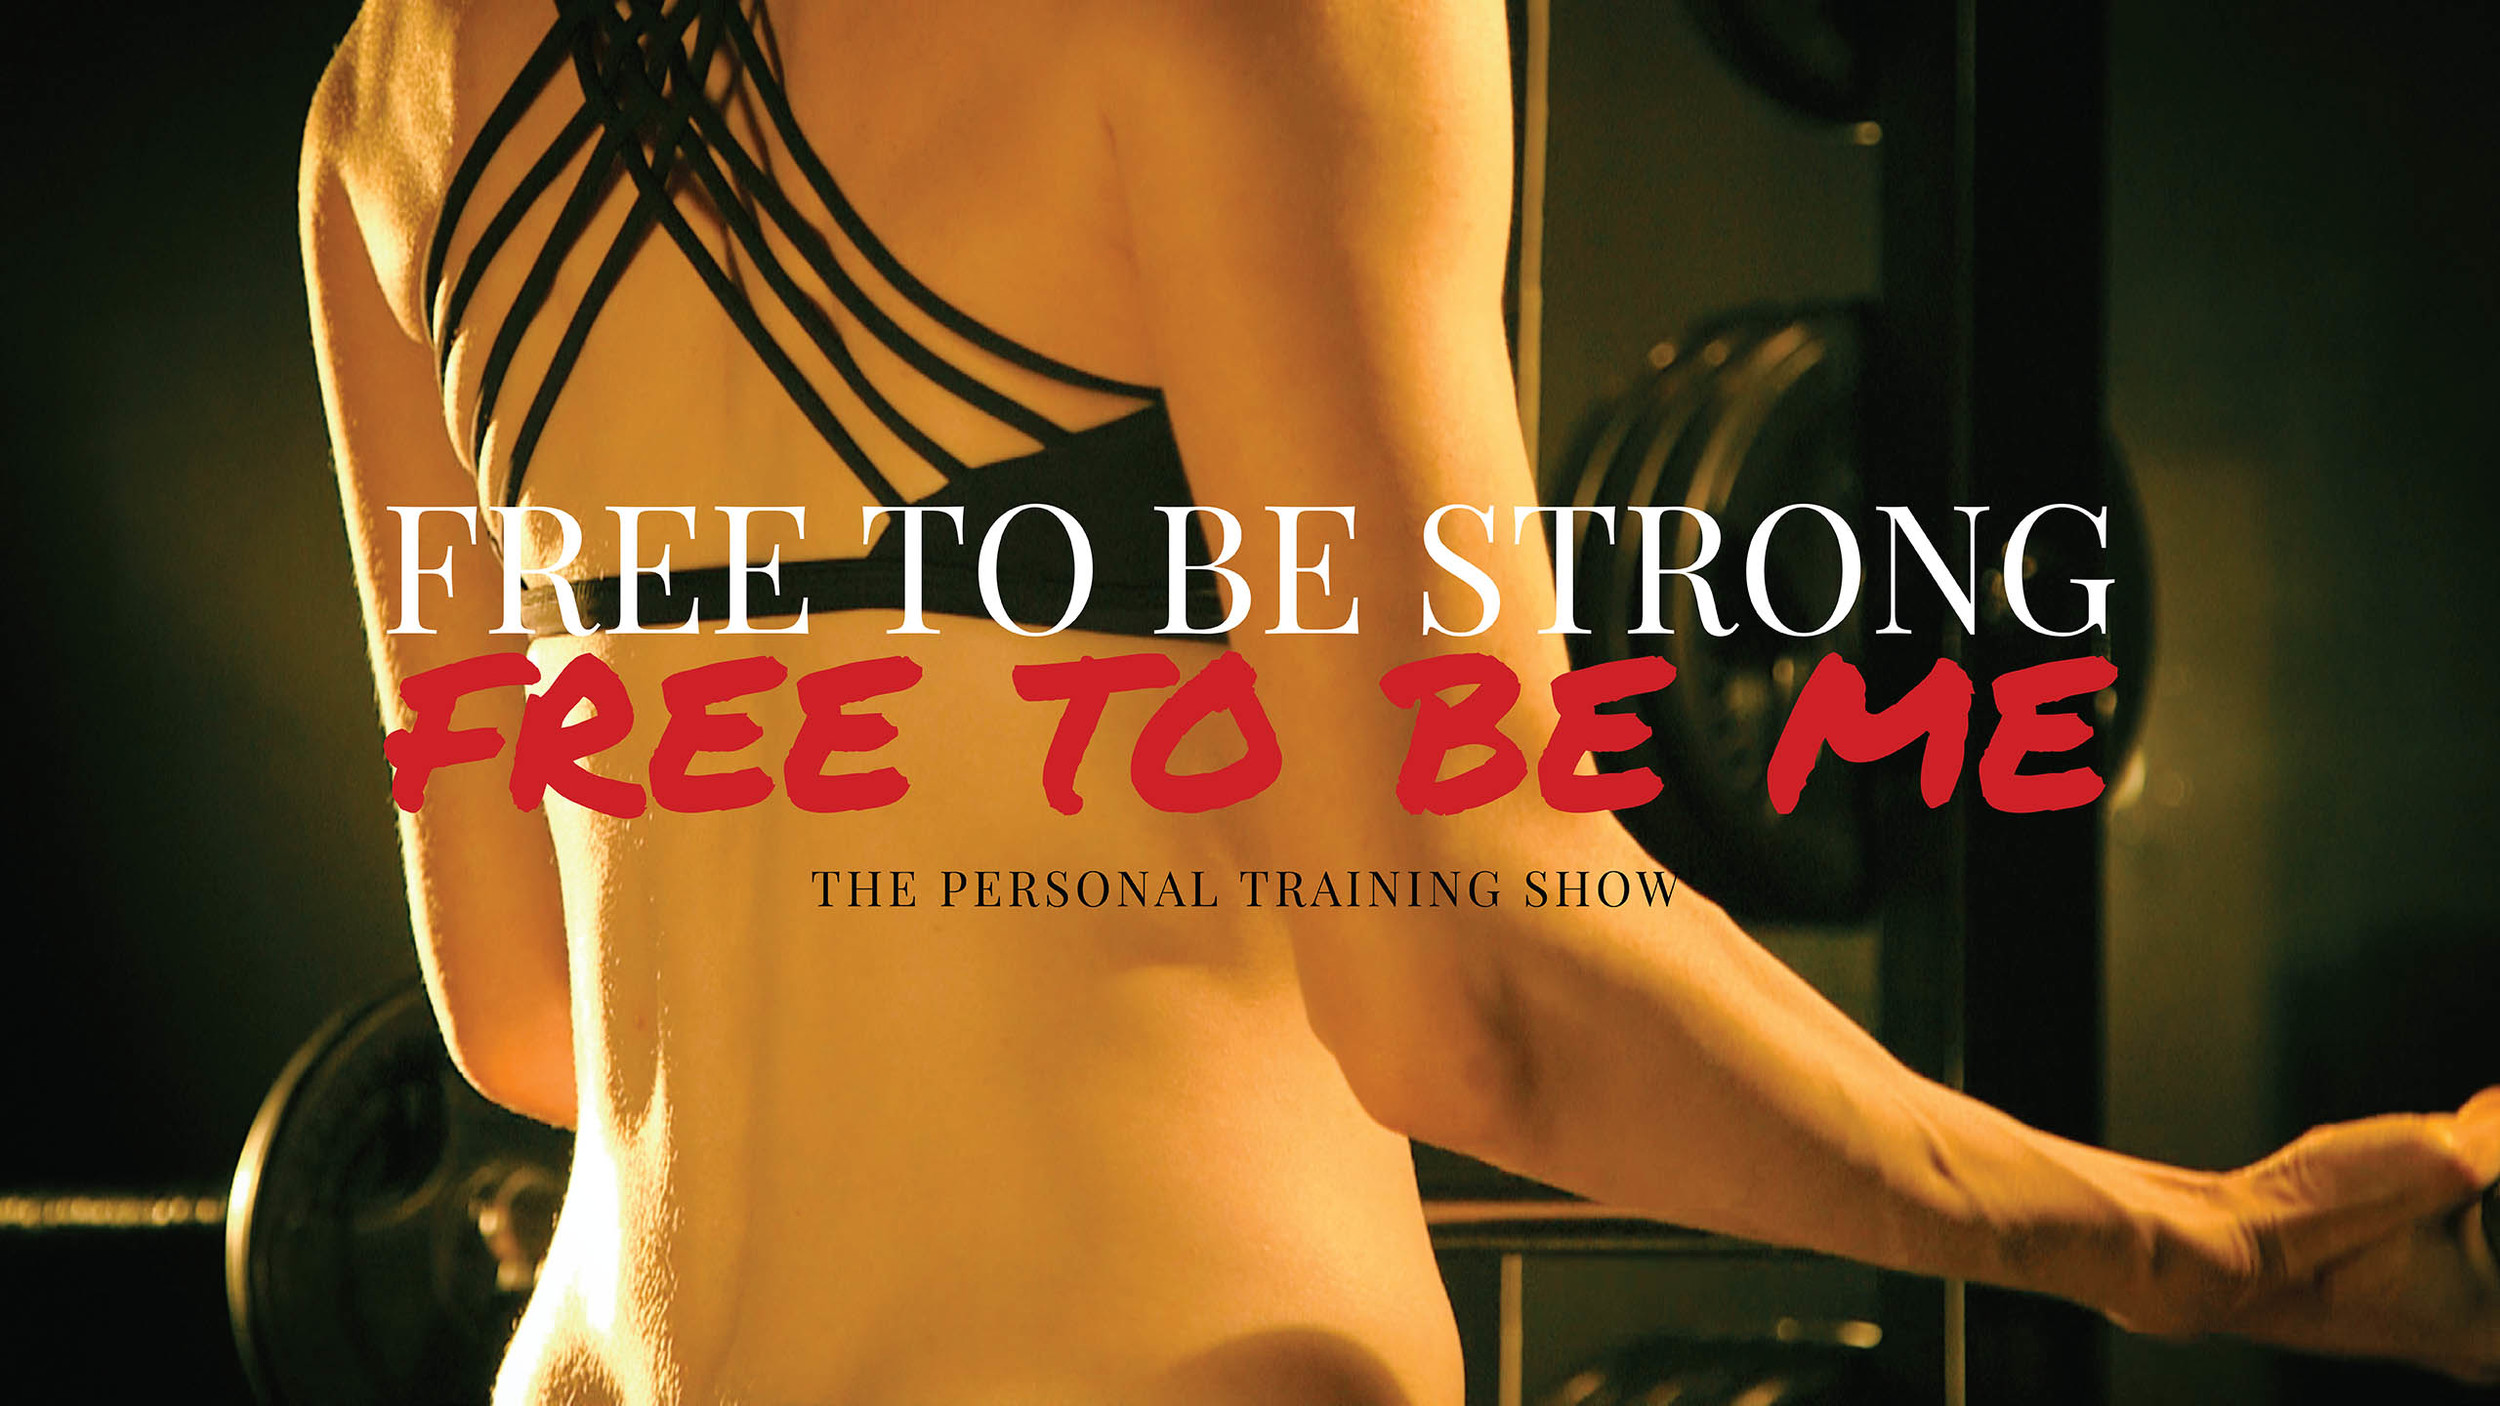 Free To Be Strong